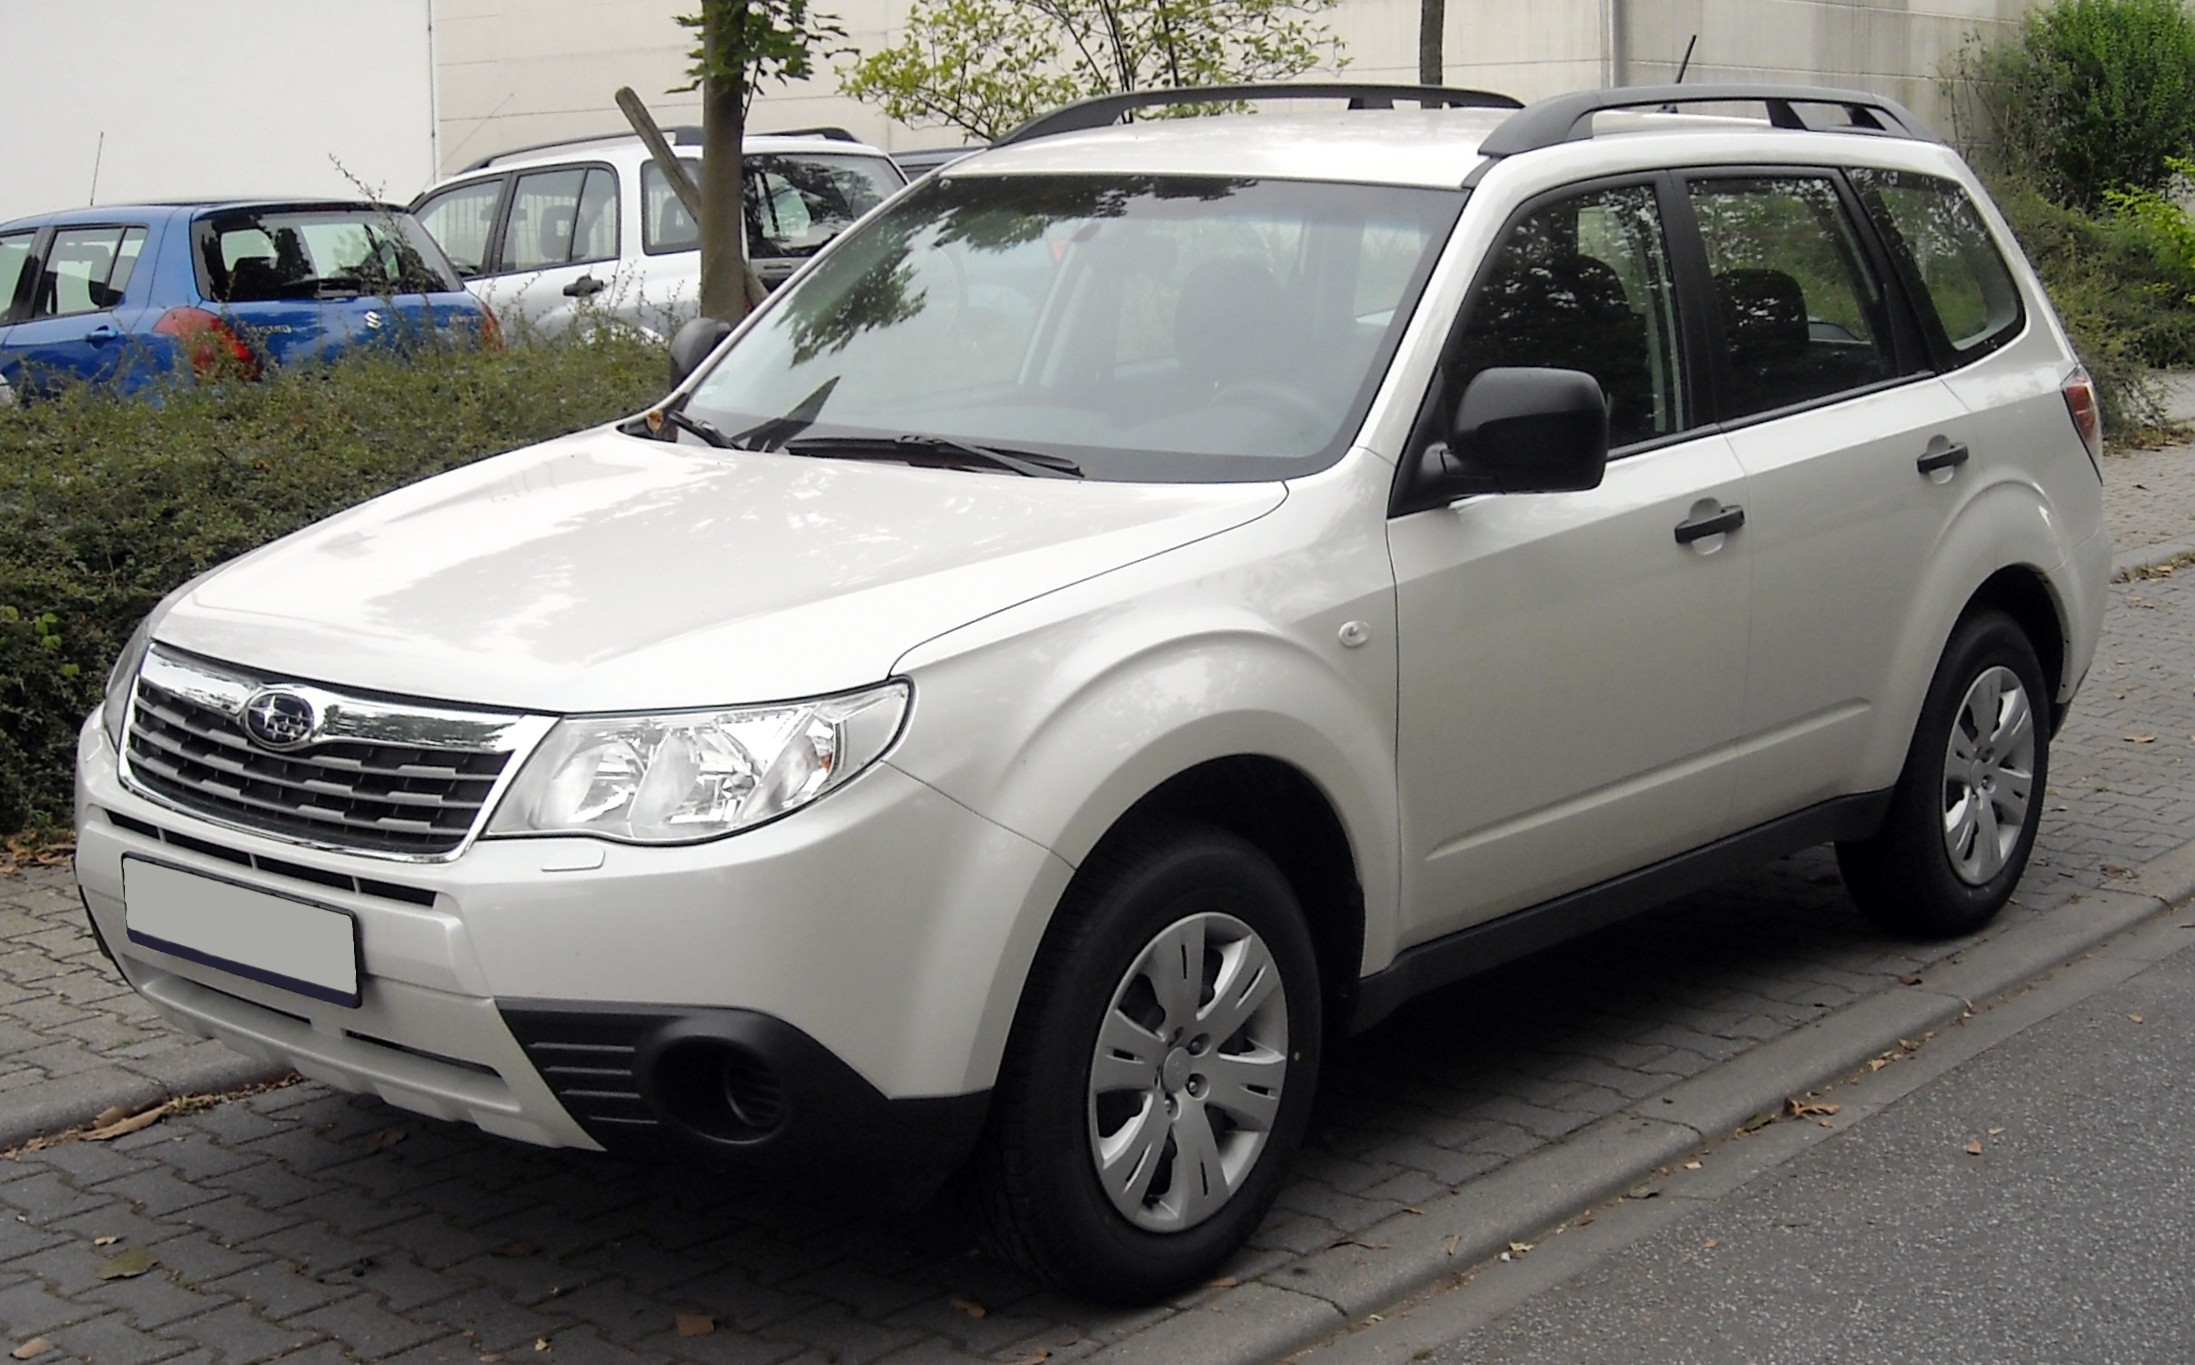 Subaru_Forester_front_20090722.jpg